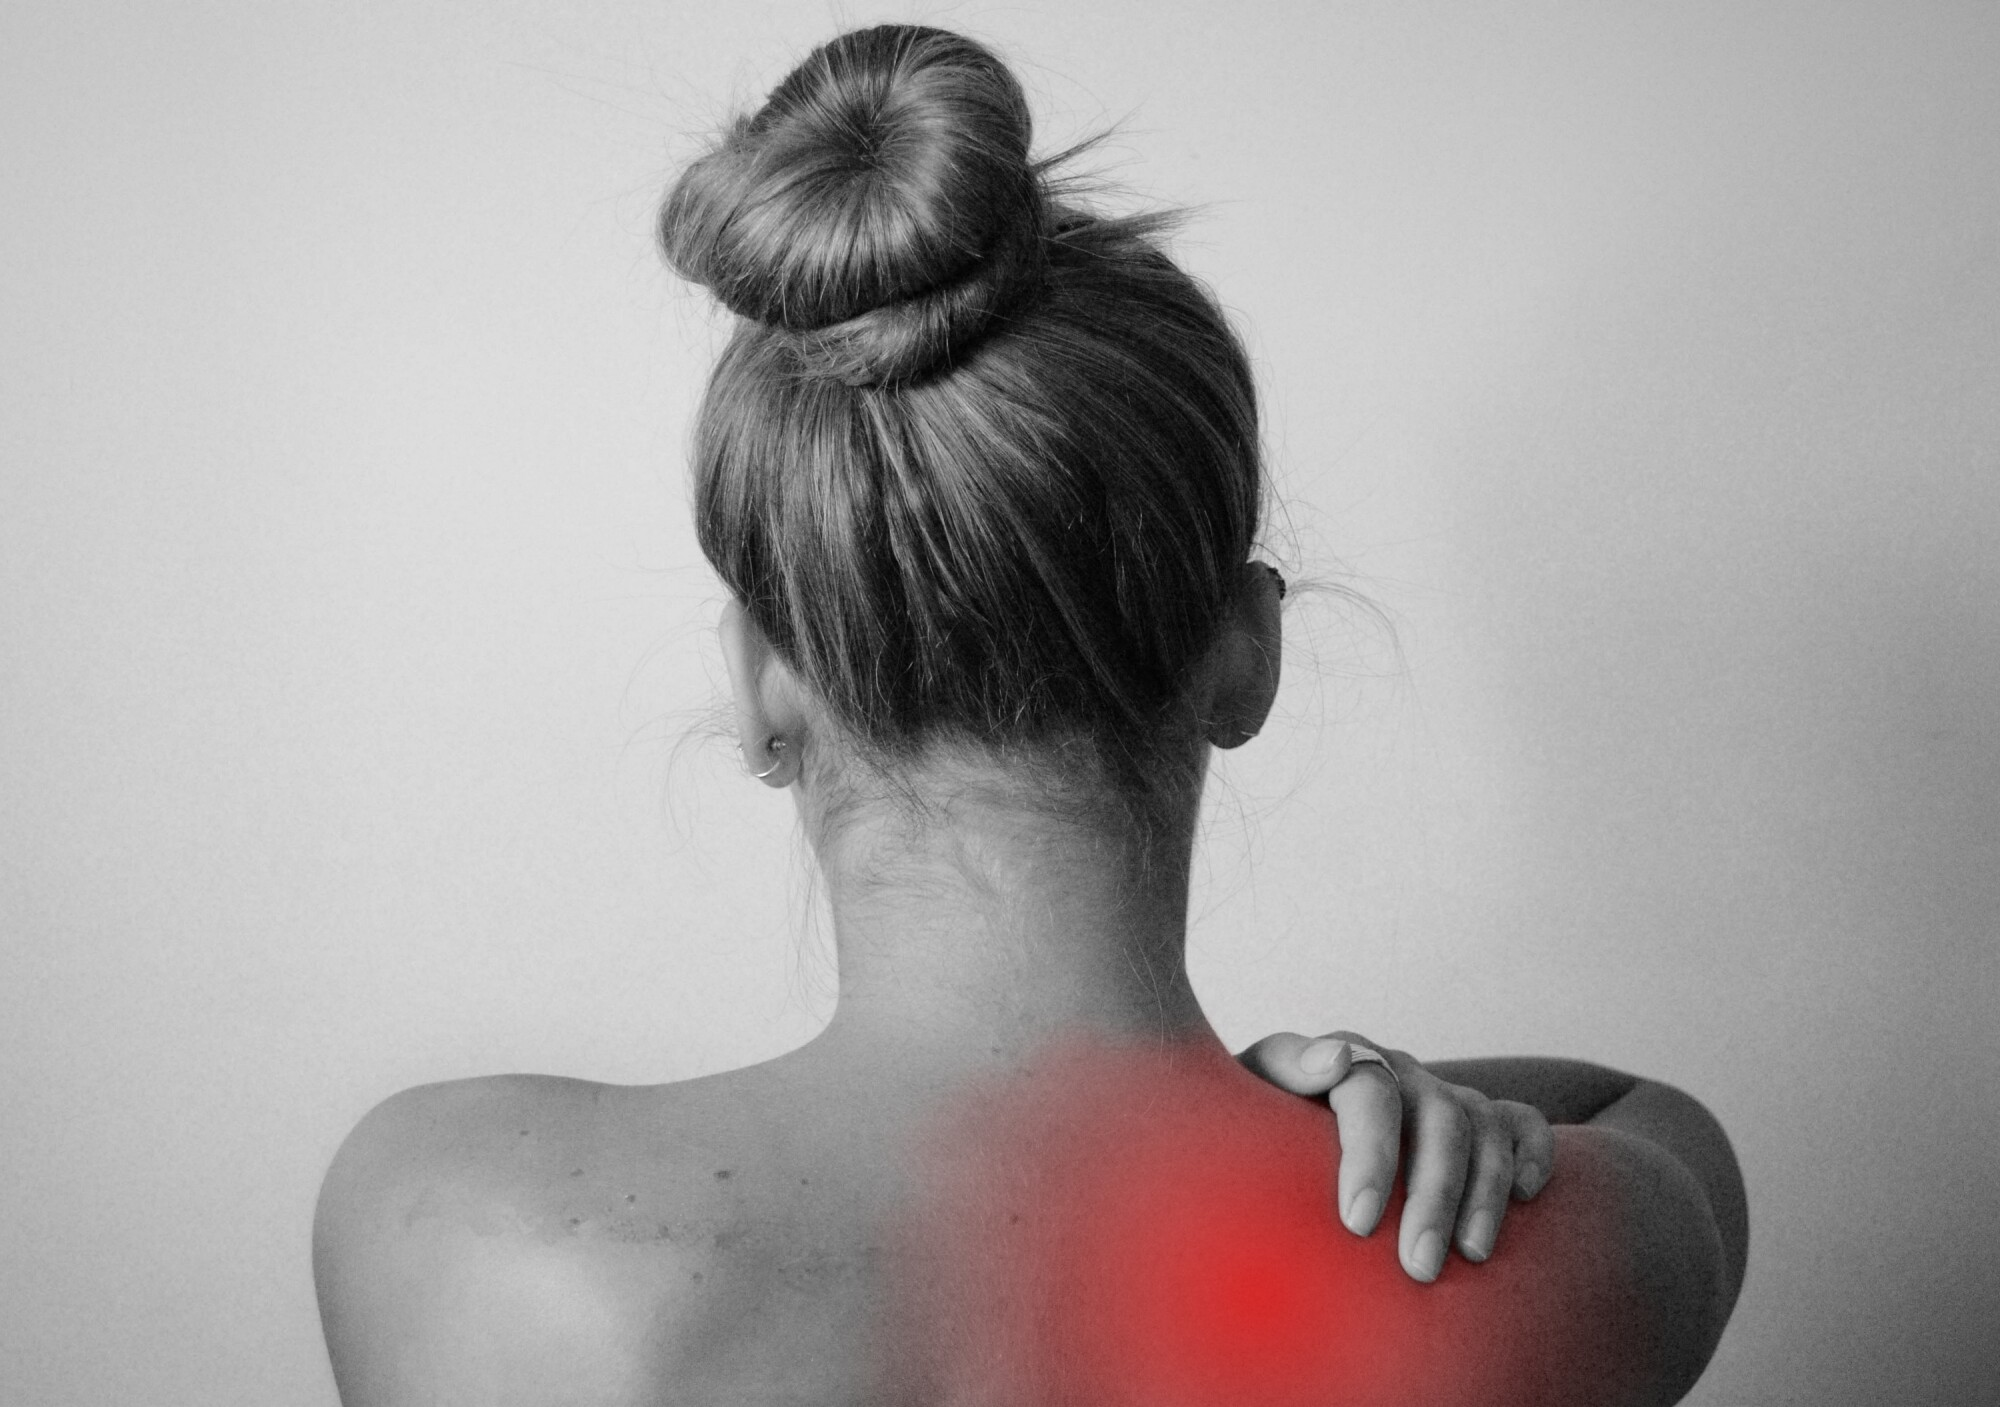 Pain and Discomfort: 6 Ways to Manage Your Pain